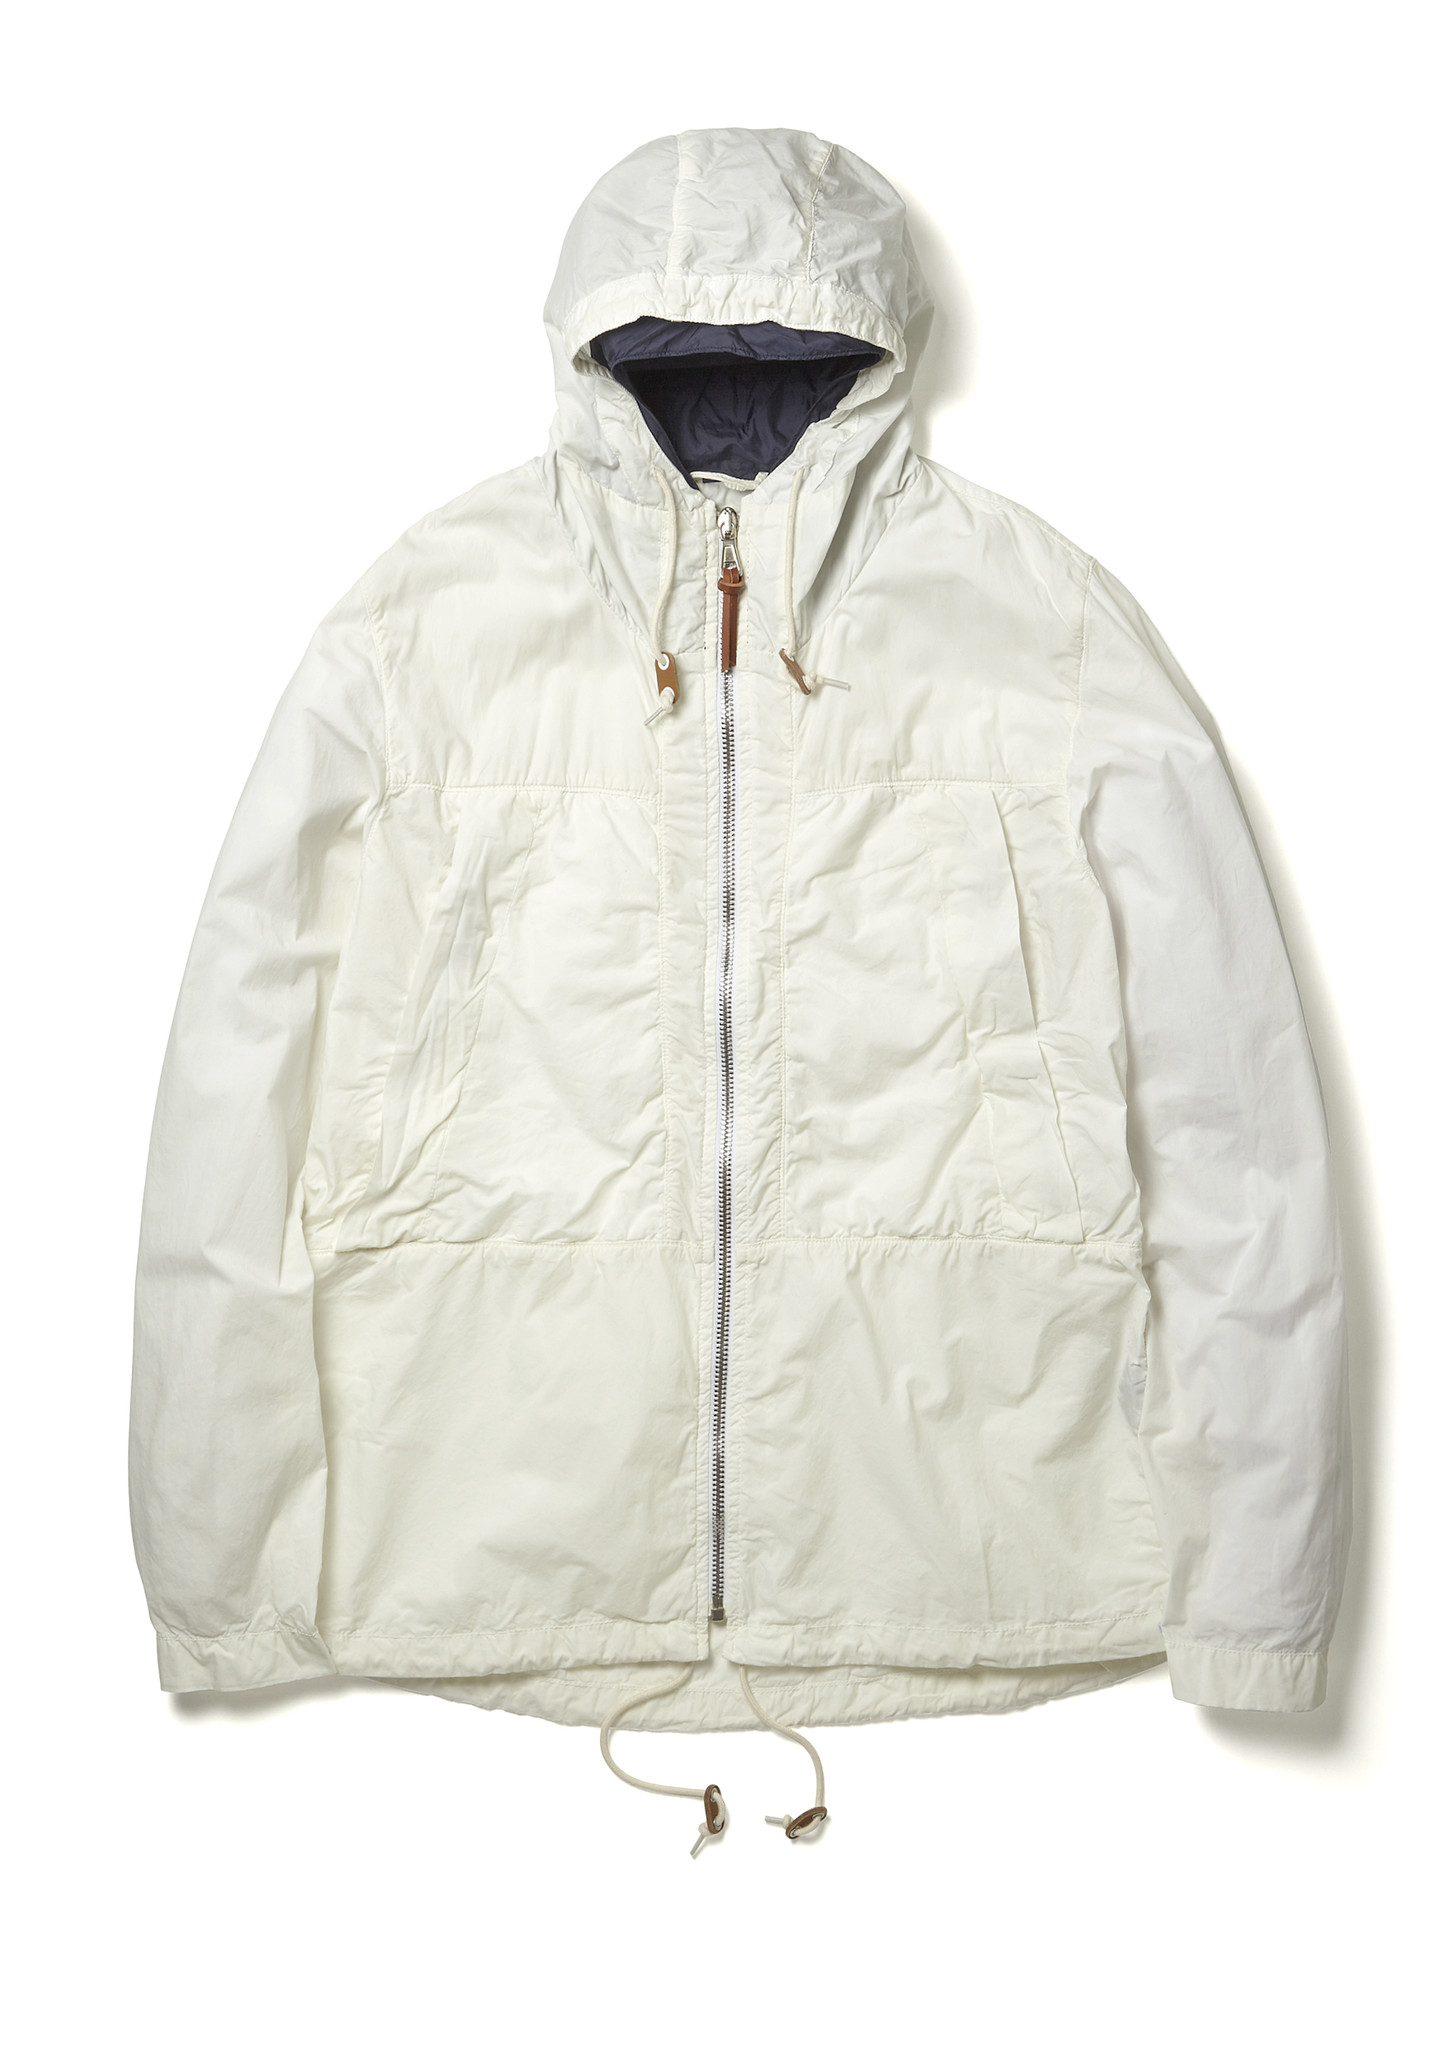 albam-clothing-66palbm413611040_01